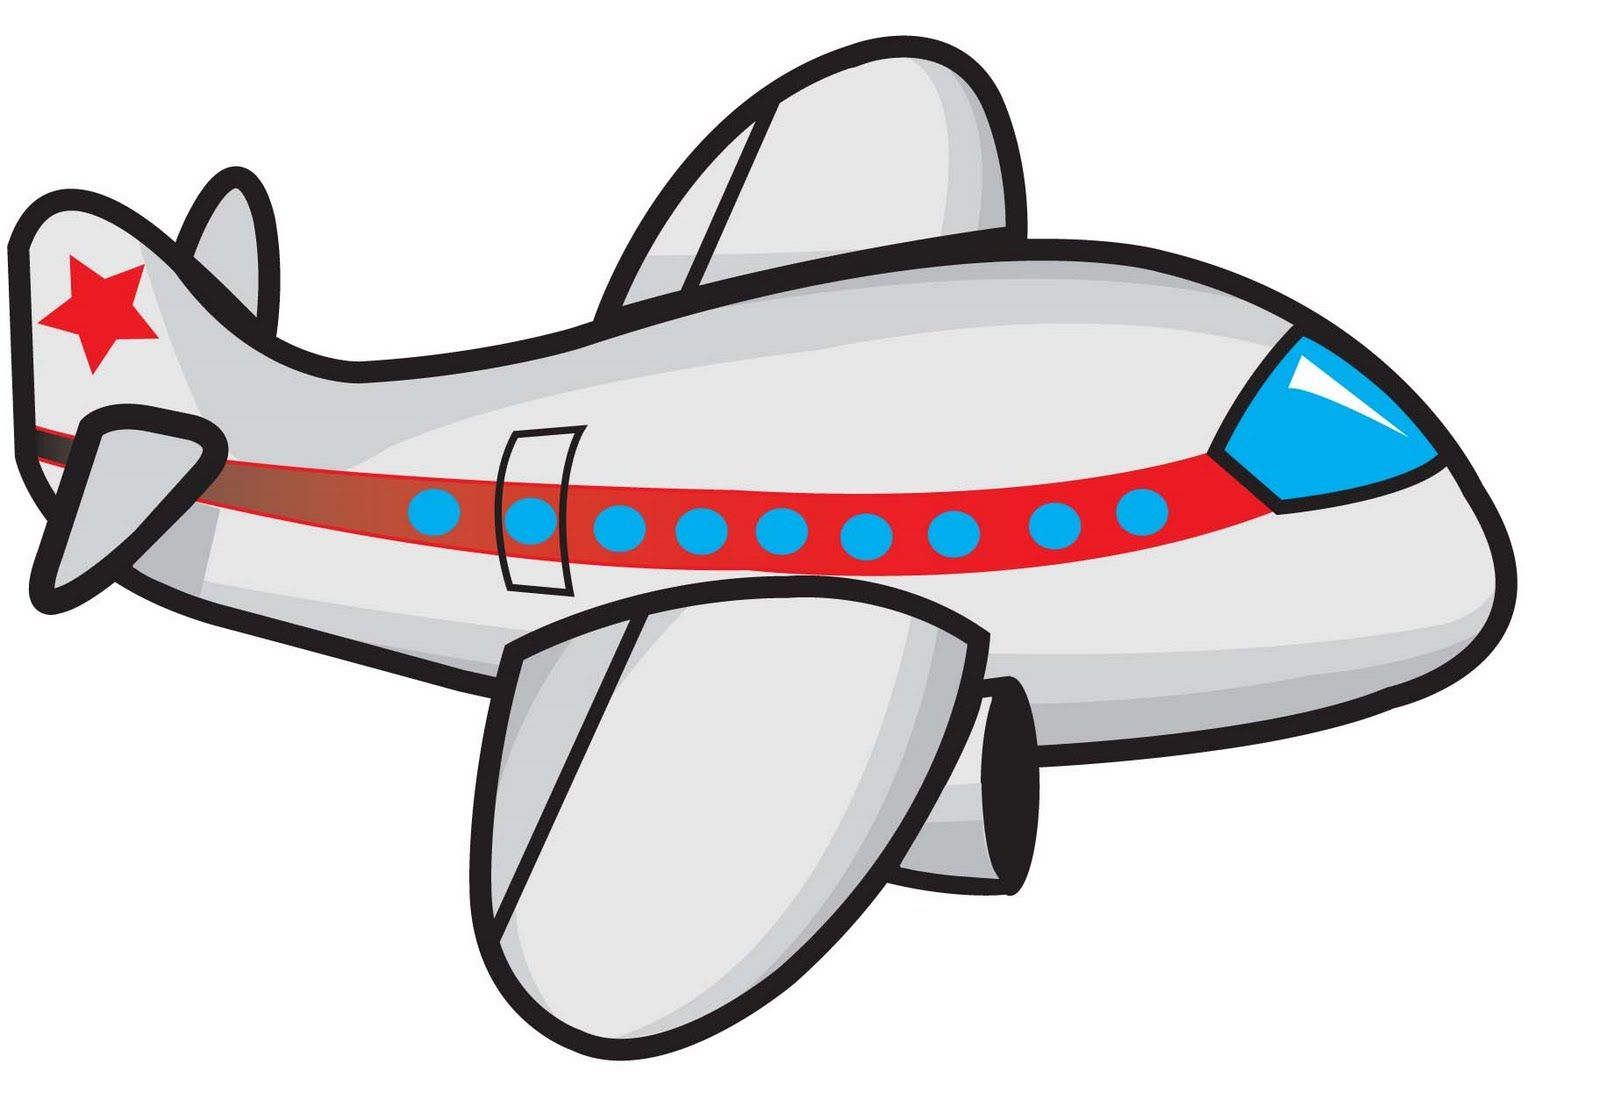 60 Cartoon Airplanes Ideas Cartoon Airplane Cartoon Clip Art